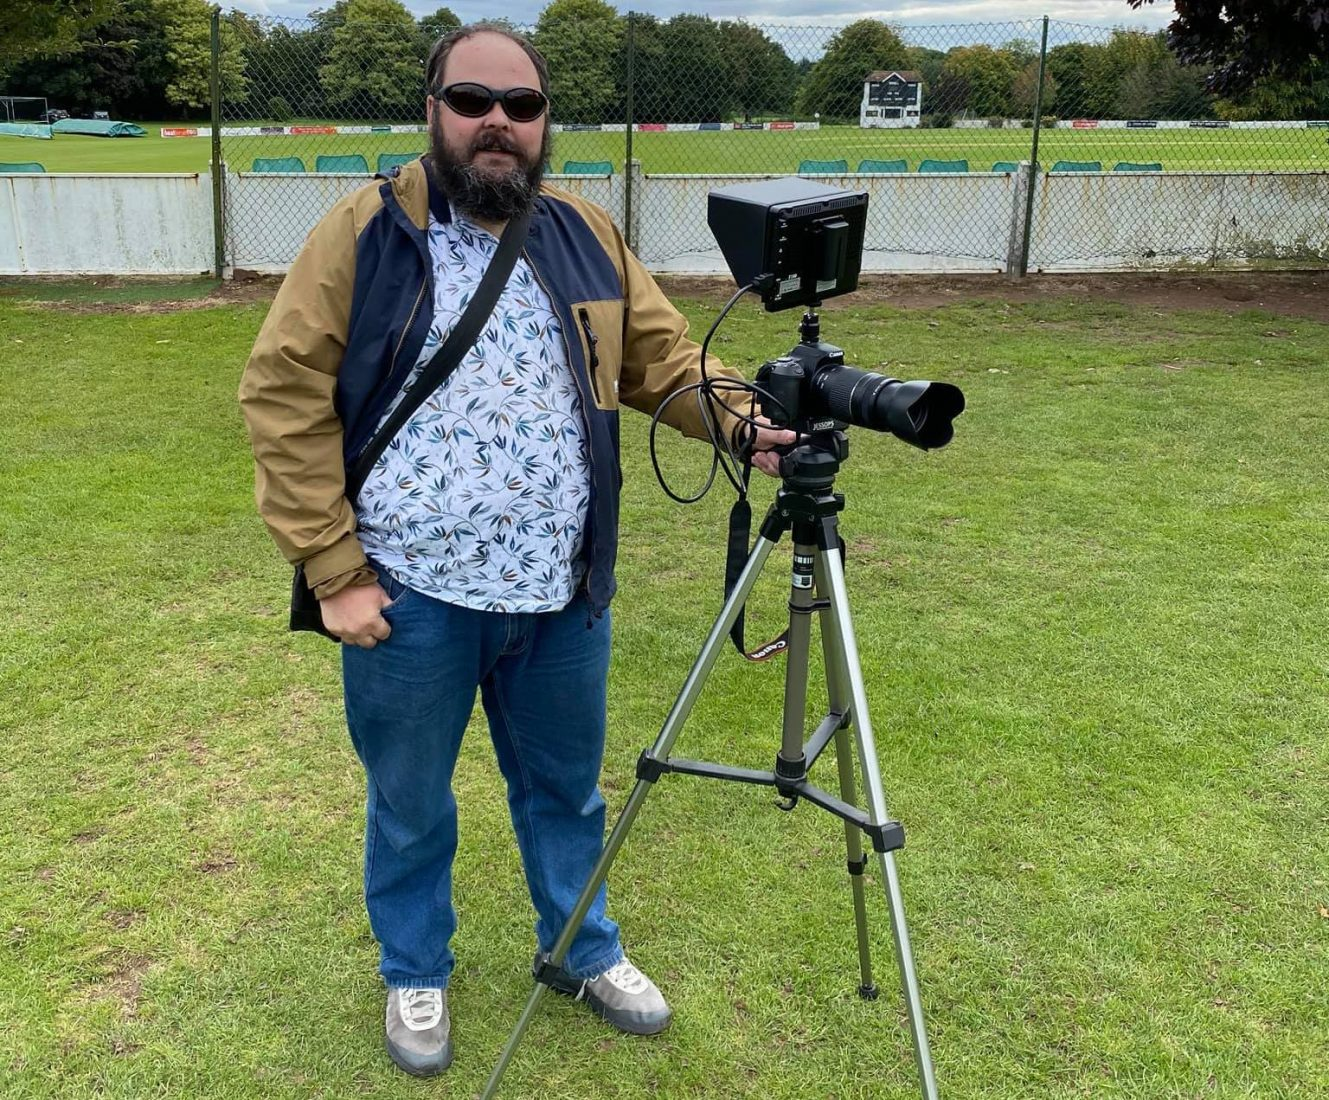 Steve, an SVI member is pictured standing with the hand on his camera and tripod in front of a cricket pitch. It's clear the camera has adjustments to help take photographs with a visual impairment.